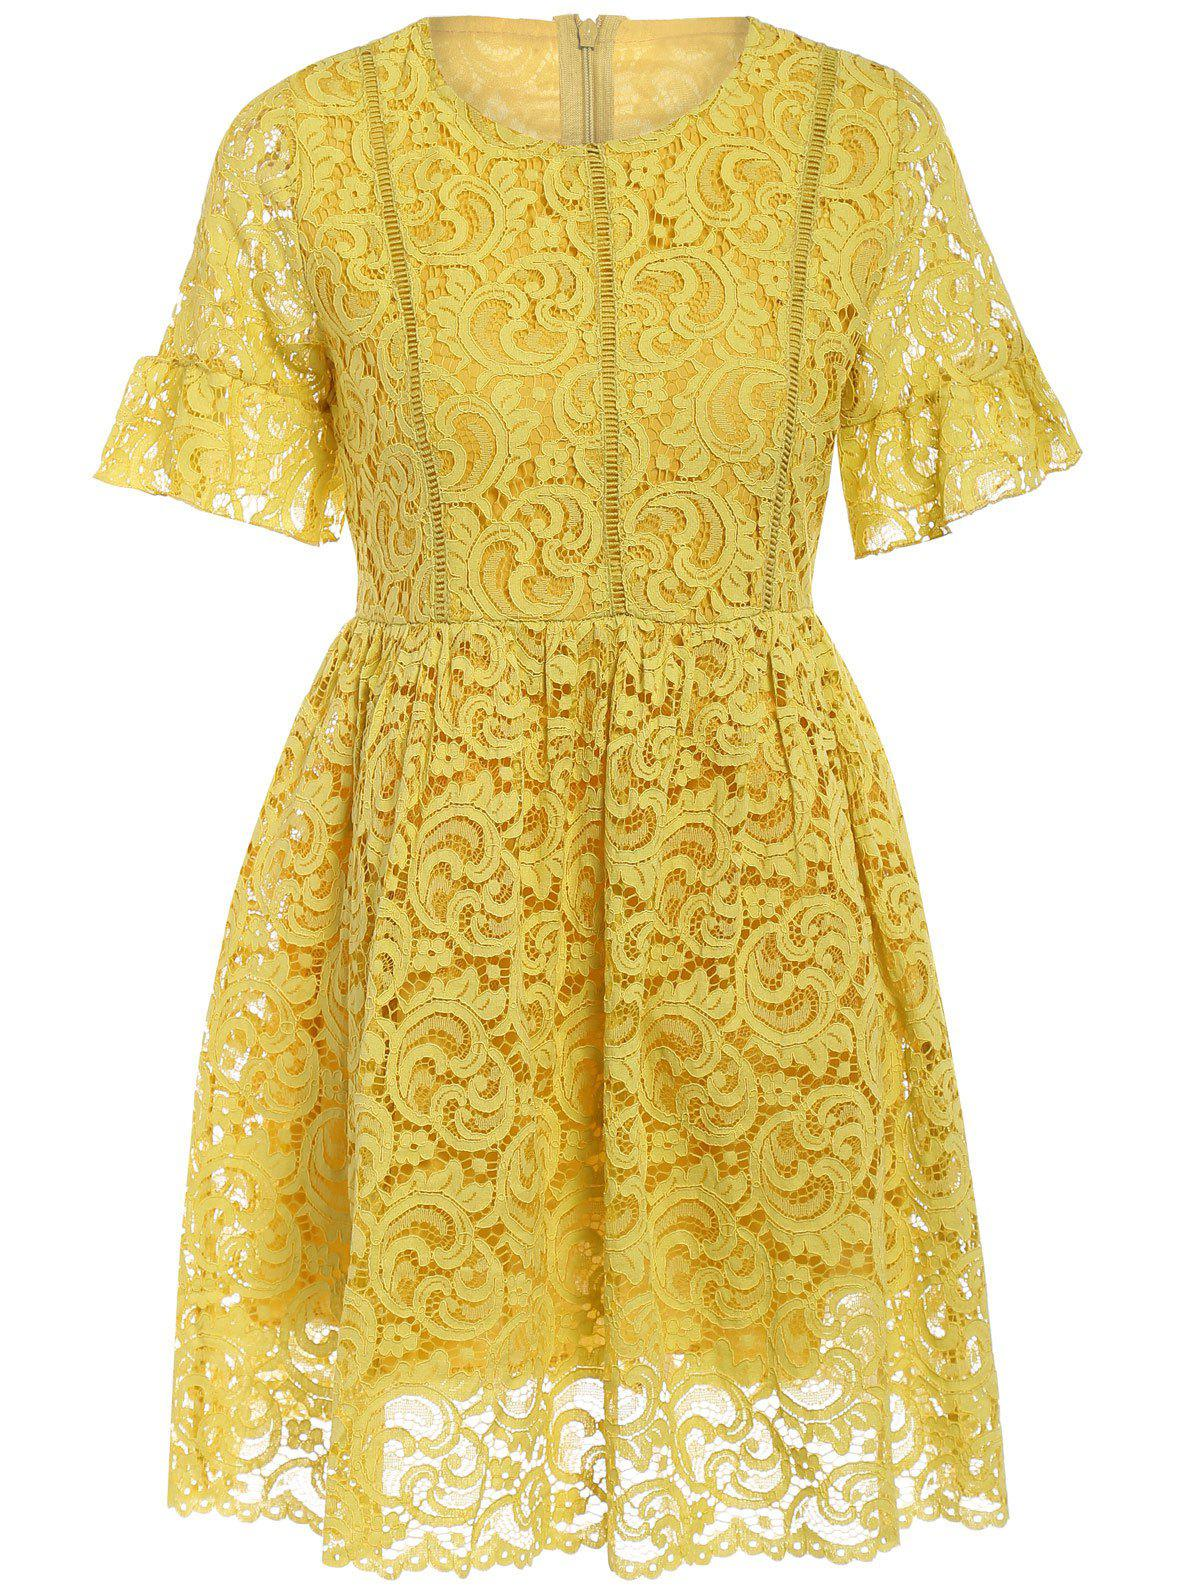 Charming High-Waist Yellow Women's Lace Dress - YELLOW ONE SIZE(FIT SIZE XS TO M)